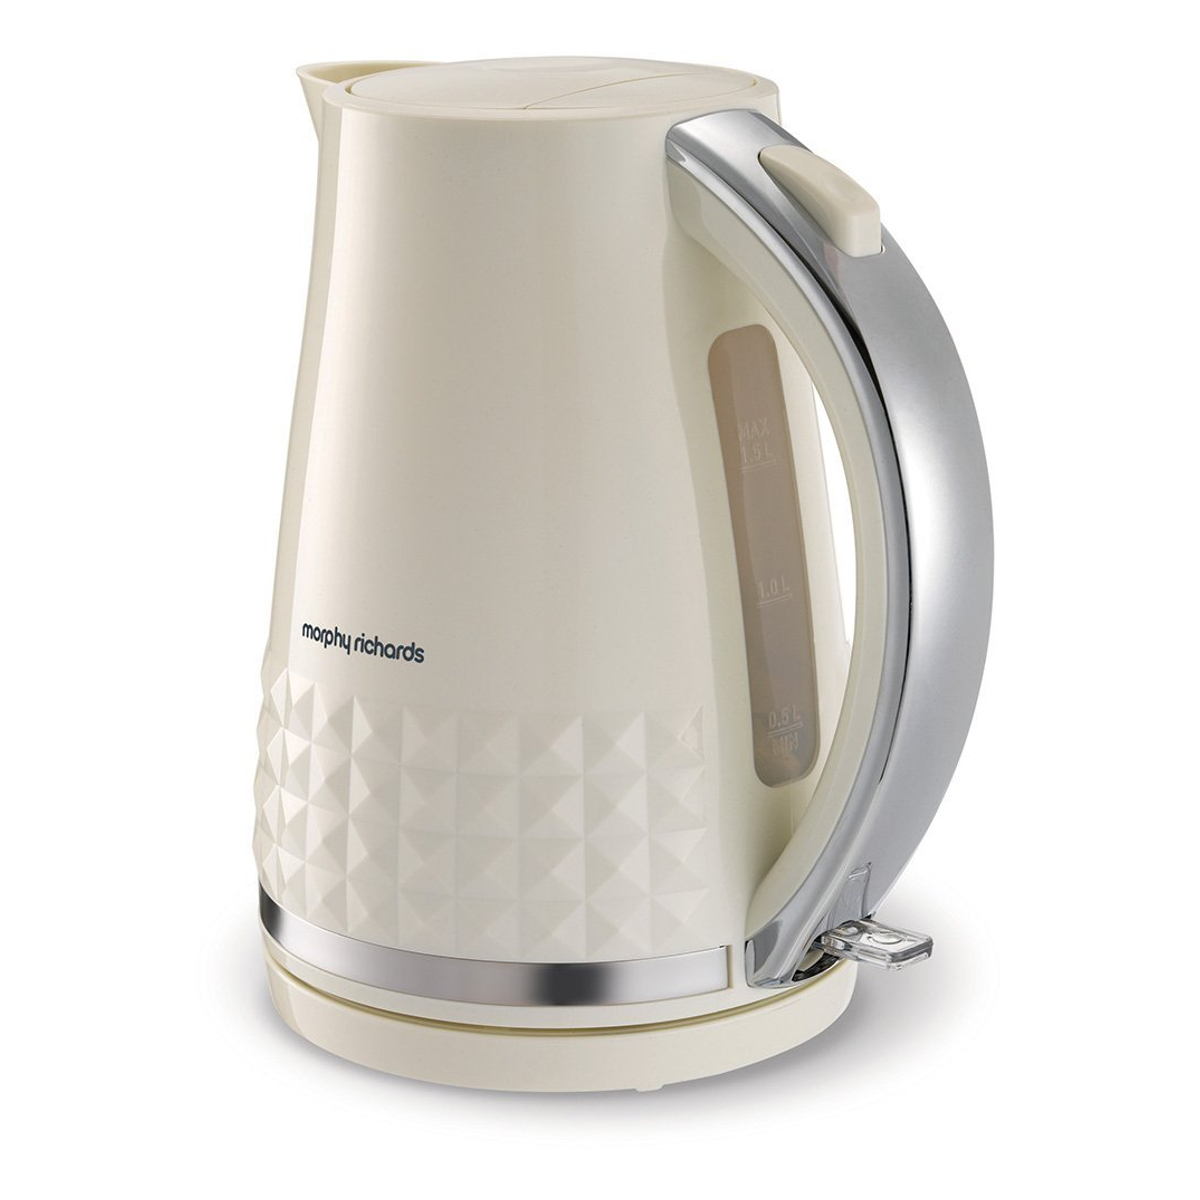 Morphy Richards 108262 3100w 1 5l Dimensions Jug Kettle